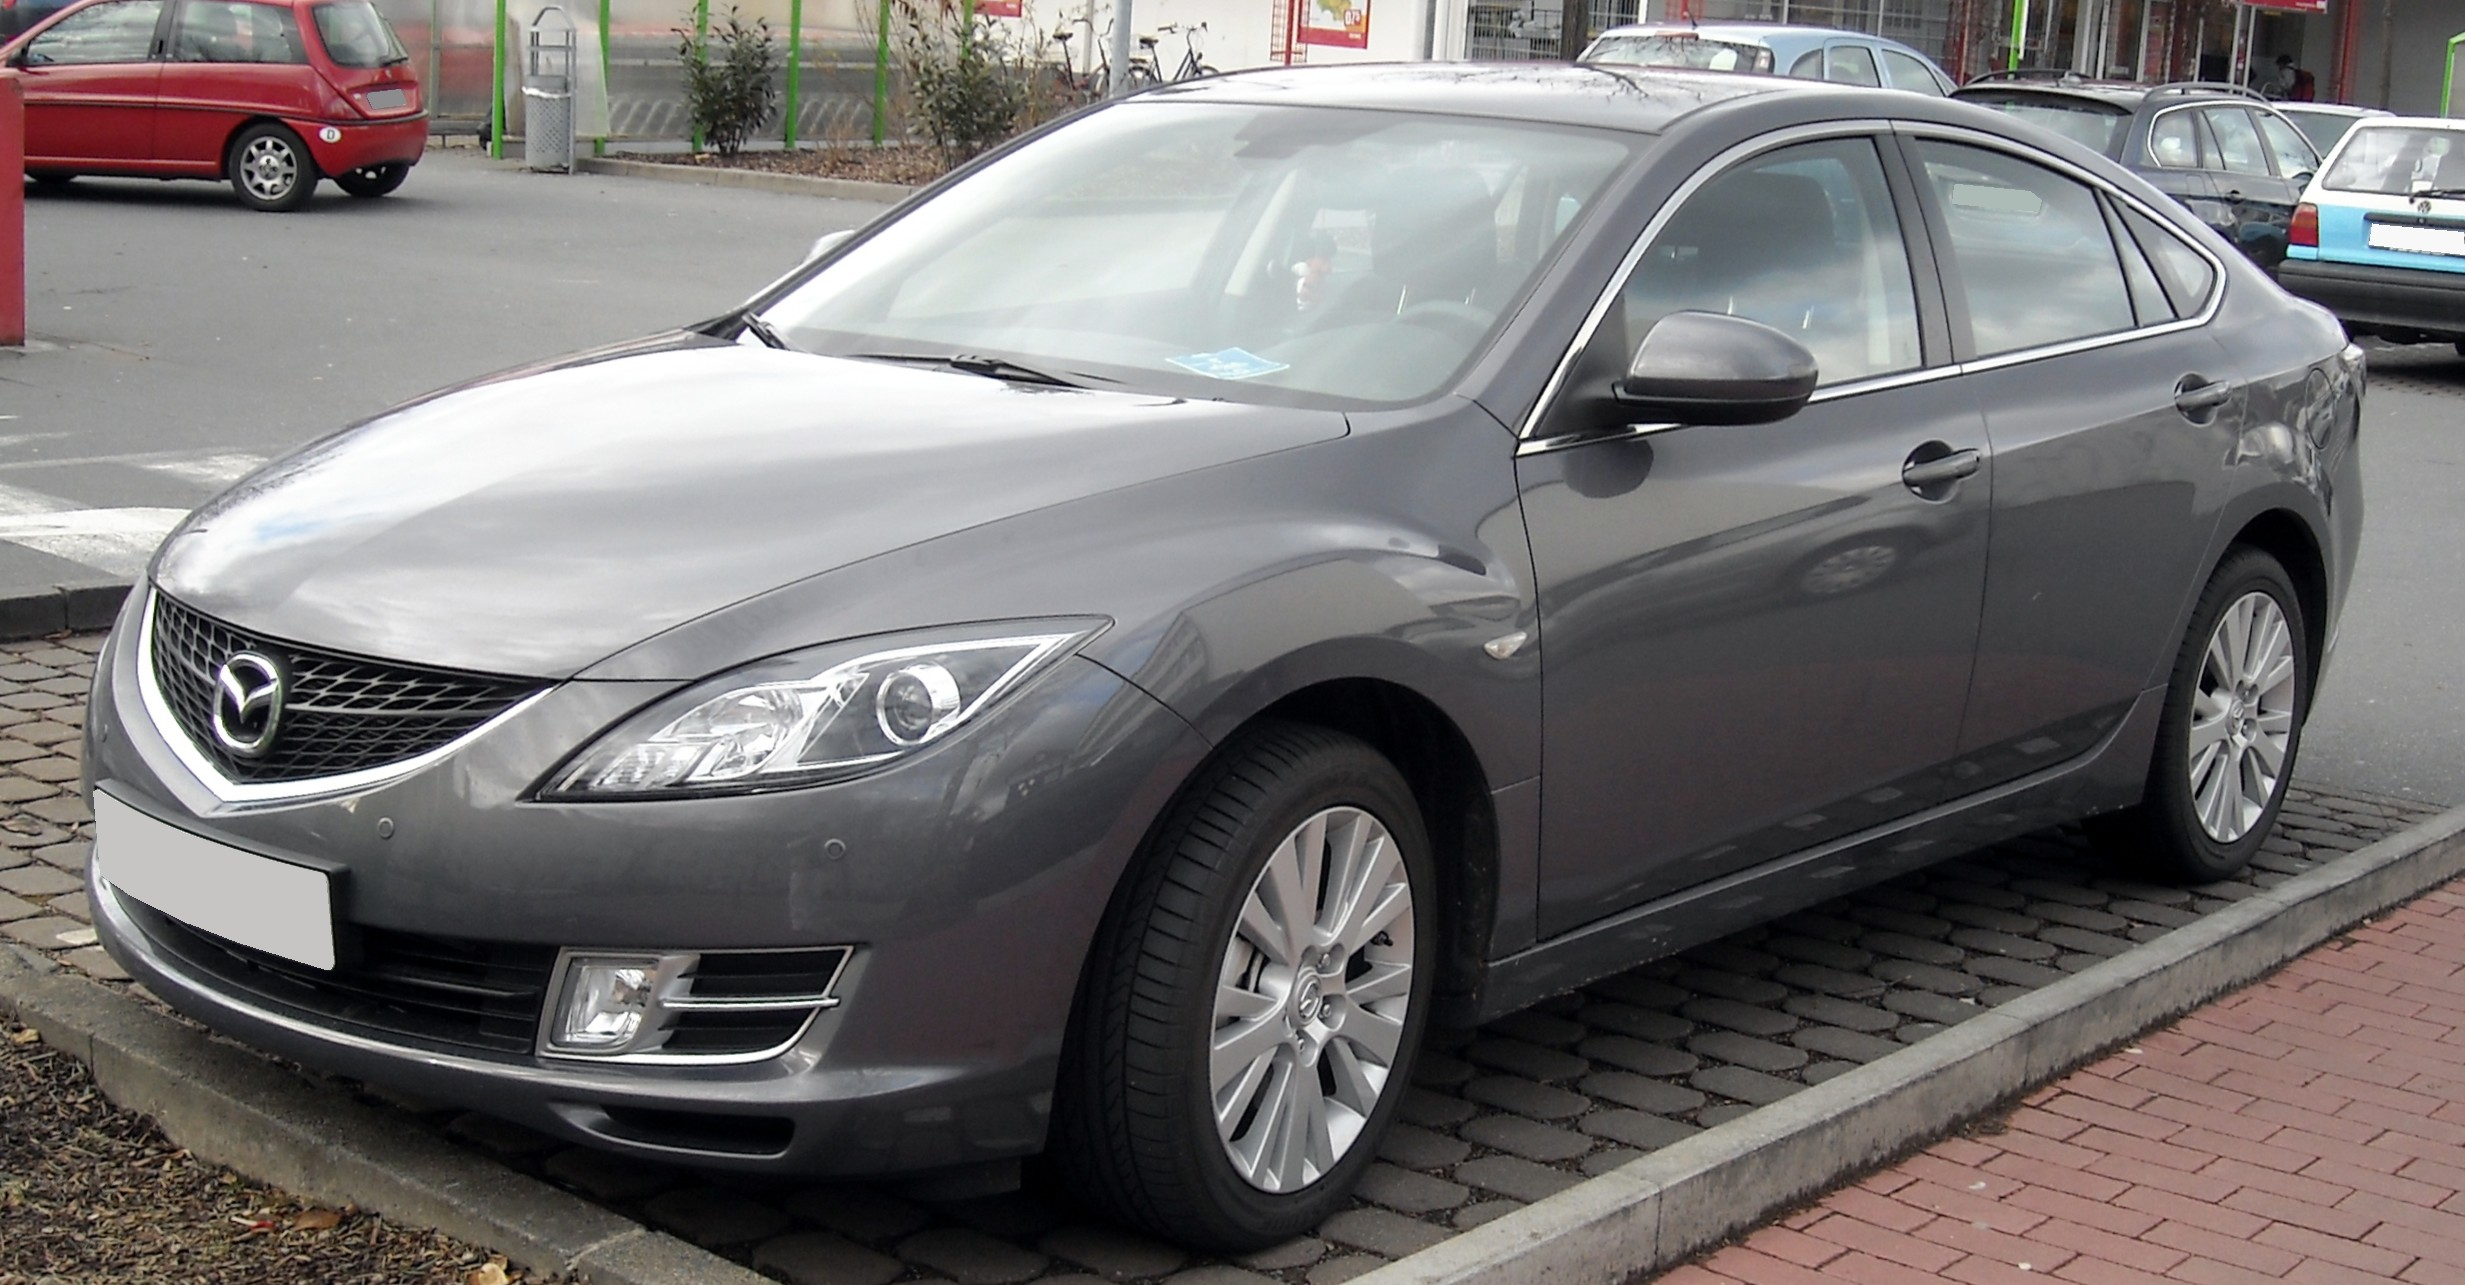 https://upload.wikimedia.org/wikipedia/commons/8/8c/Mazda_6_front_20090212.jpg